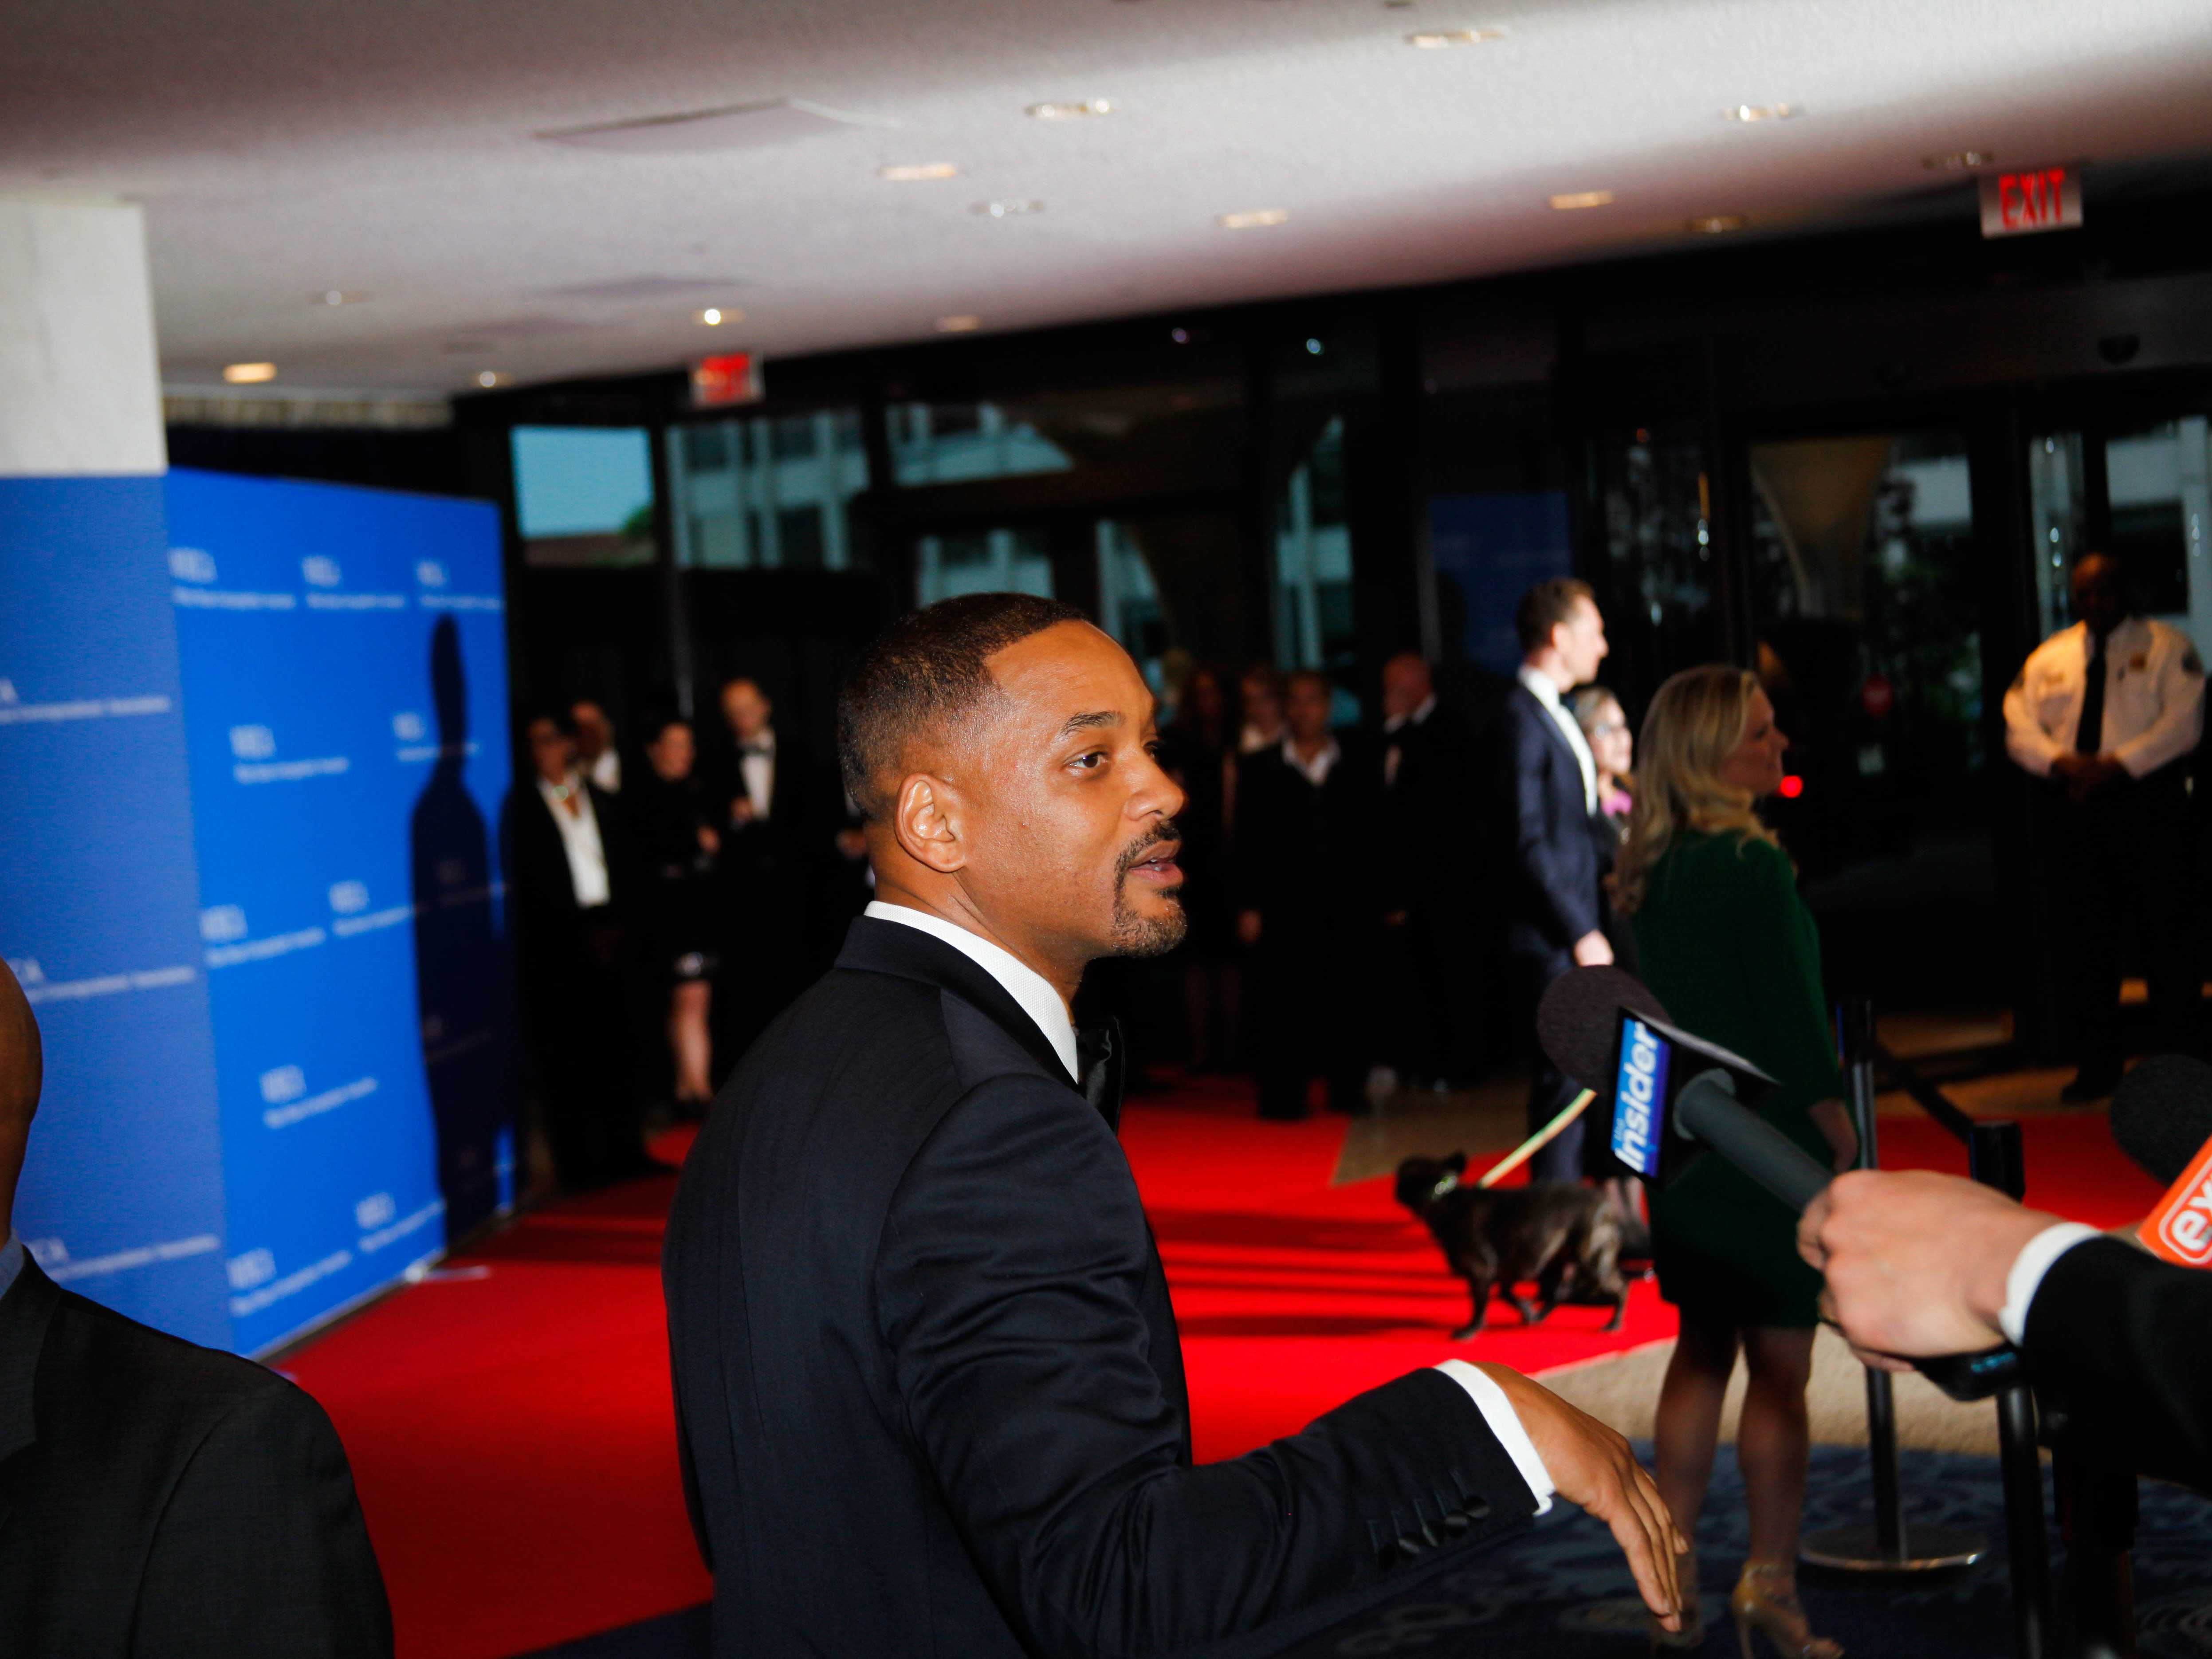 """Will Smith speaking to press on the red carpet ahead of the White House Correspondents' Association Dinner on Saturday in Washington, D.C.Party-goers take photographs at the Thompson-Reuters post-dinner event on Saturday in Washington, D.C.A couple exiting after the dinner events on Saturday in Washington, D.C.The scene as the Yahoo/ABC pre-dinner party opened, which as it was the first party of the evening was the first stop for many dinner guests ahead of the 102nd White House Correspondents' Association Dinner on Saturday in Washington, D.C.Shonda Rhimes speaking with Former Secretary of State Madeleine Albright while surrounded by on-looking guests at the ABC/Yahoo party before the 102nd White House Correspondents' Dinner on Saturday in Washington D.C.Actor Tony Goldwyn leans over the bar during a crowded party leading up to the White House Correspondents' Association Dinner on Saturday in Washington D.C.The scene from the Yahoo/ABC pre-party ahead of the 102nd White House Correspondents' Dinner on Saturday, April 30th in Washington, D.C.Fans and staff wait for a glimpse of celebrities exiting after in the lobby of the Washington Hilton on Saturday in Washington, D.C.One car in President Obama's motorcade leaving the Washington Hilton after the White House Correspondents' Association Dinner on Saturday in Washington, D.C.Dinner guests after 102nd White House Correspondents' Association Dinner on Saturday, April 30 in Washington, D.C.Party-goers leave empty glasses (left) toward the end of a pre-party and Sen. Rand Paul and his wife (right) at a pre-party on Saturday.DJ Khaled and Arianna Huffington chatting with fans (L) and leaving the 102nd White House Correspondents' Association Dinner (R) on Saturday.The entrance to the Onion's """"Diamond Joe"""" party — one of the many events that followed the White House Correspondents' Association Dinner on Saturday in Washington, D.C.Will Smith speaking to press on the red carpet ahead of the White House Correspondents' Assoc"""